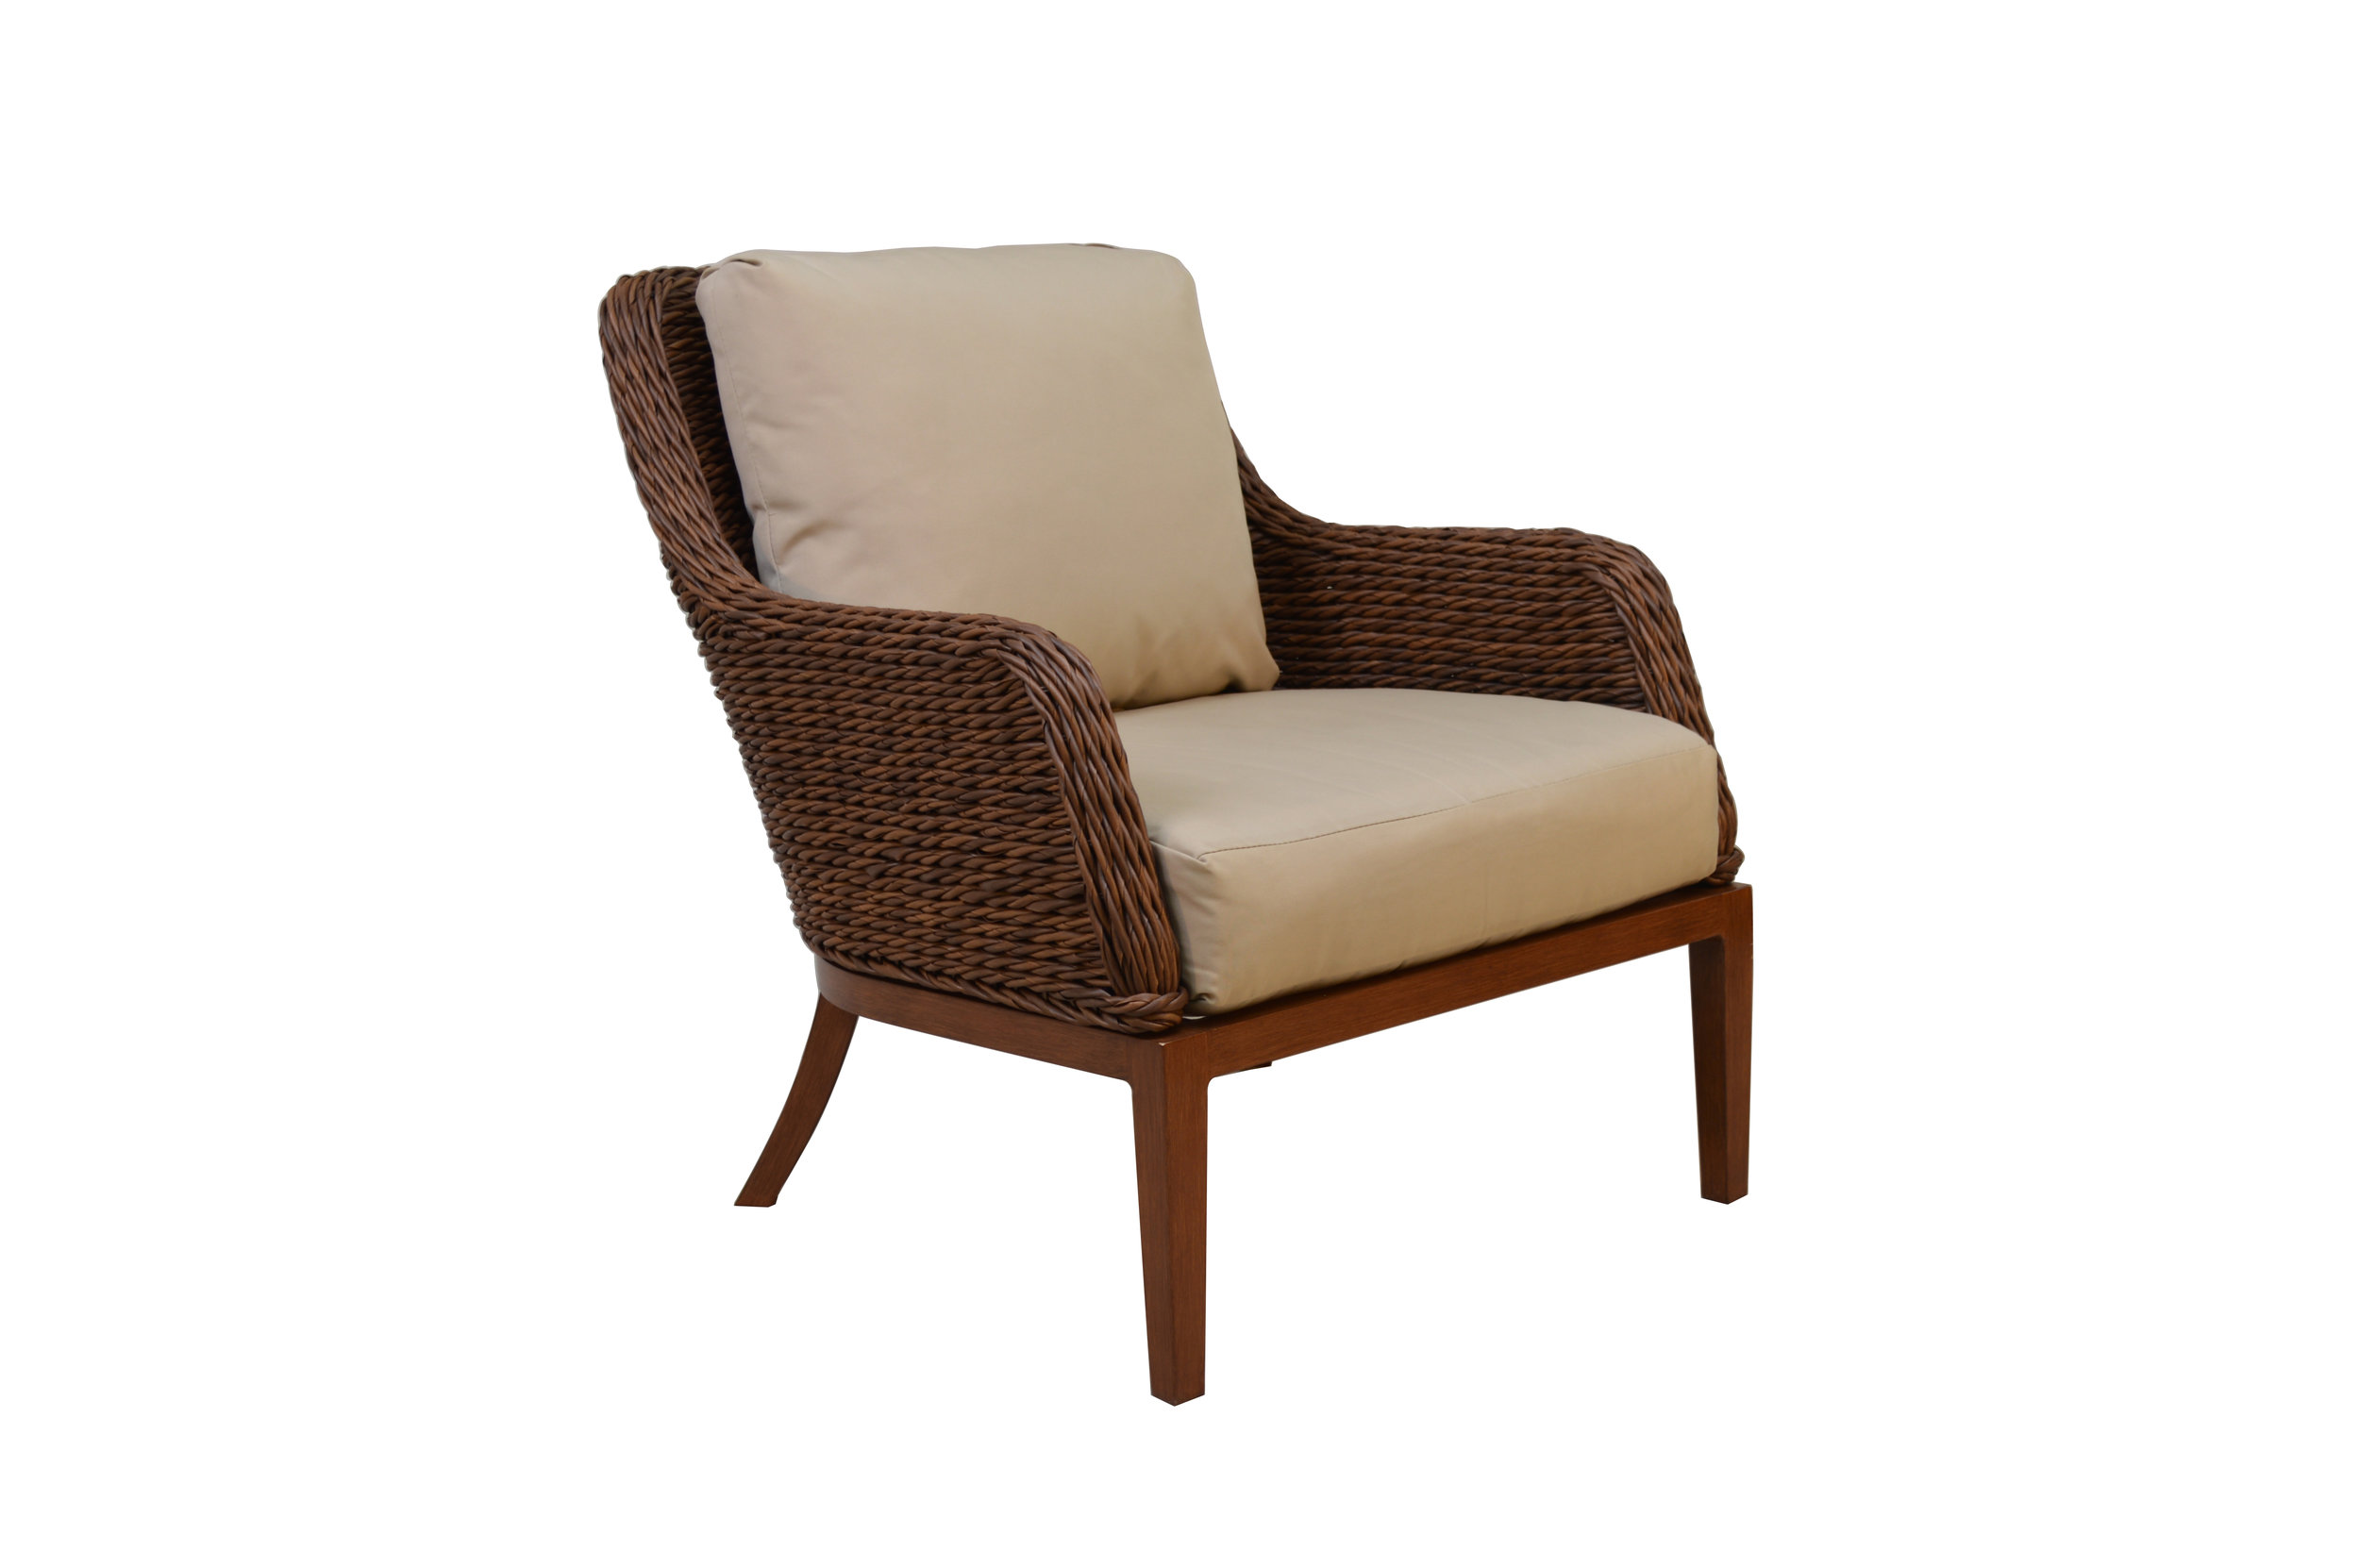 974131 Westchester Lounge Chair   30.3 x 37 x 34.5